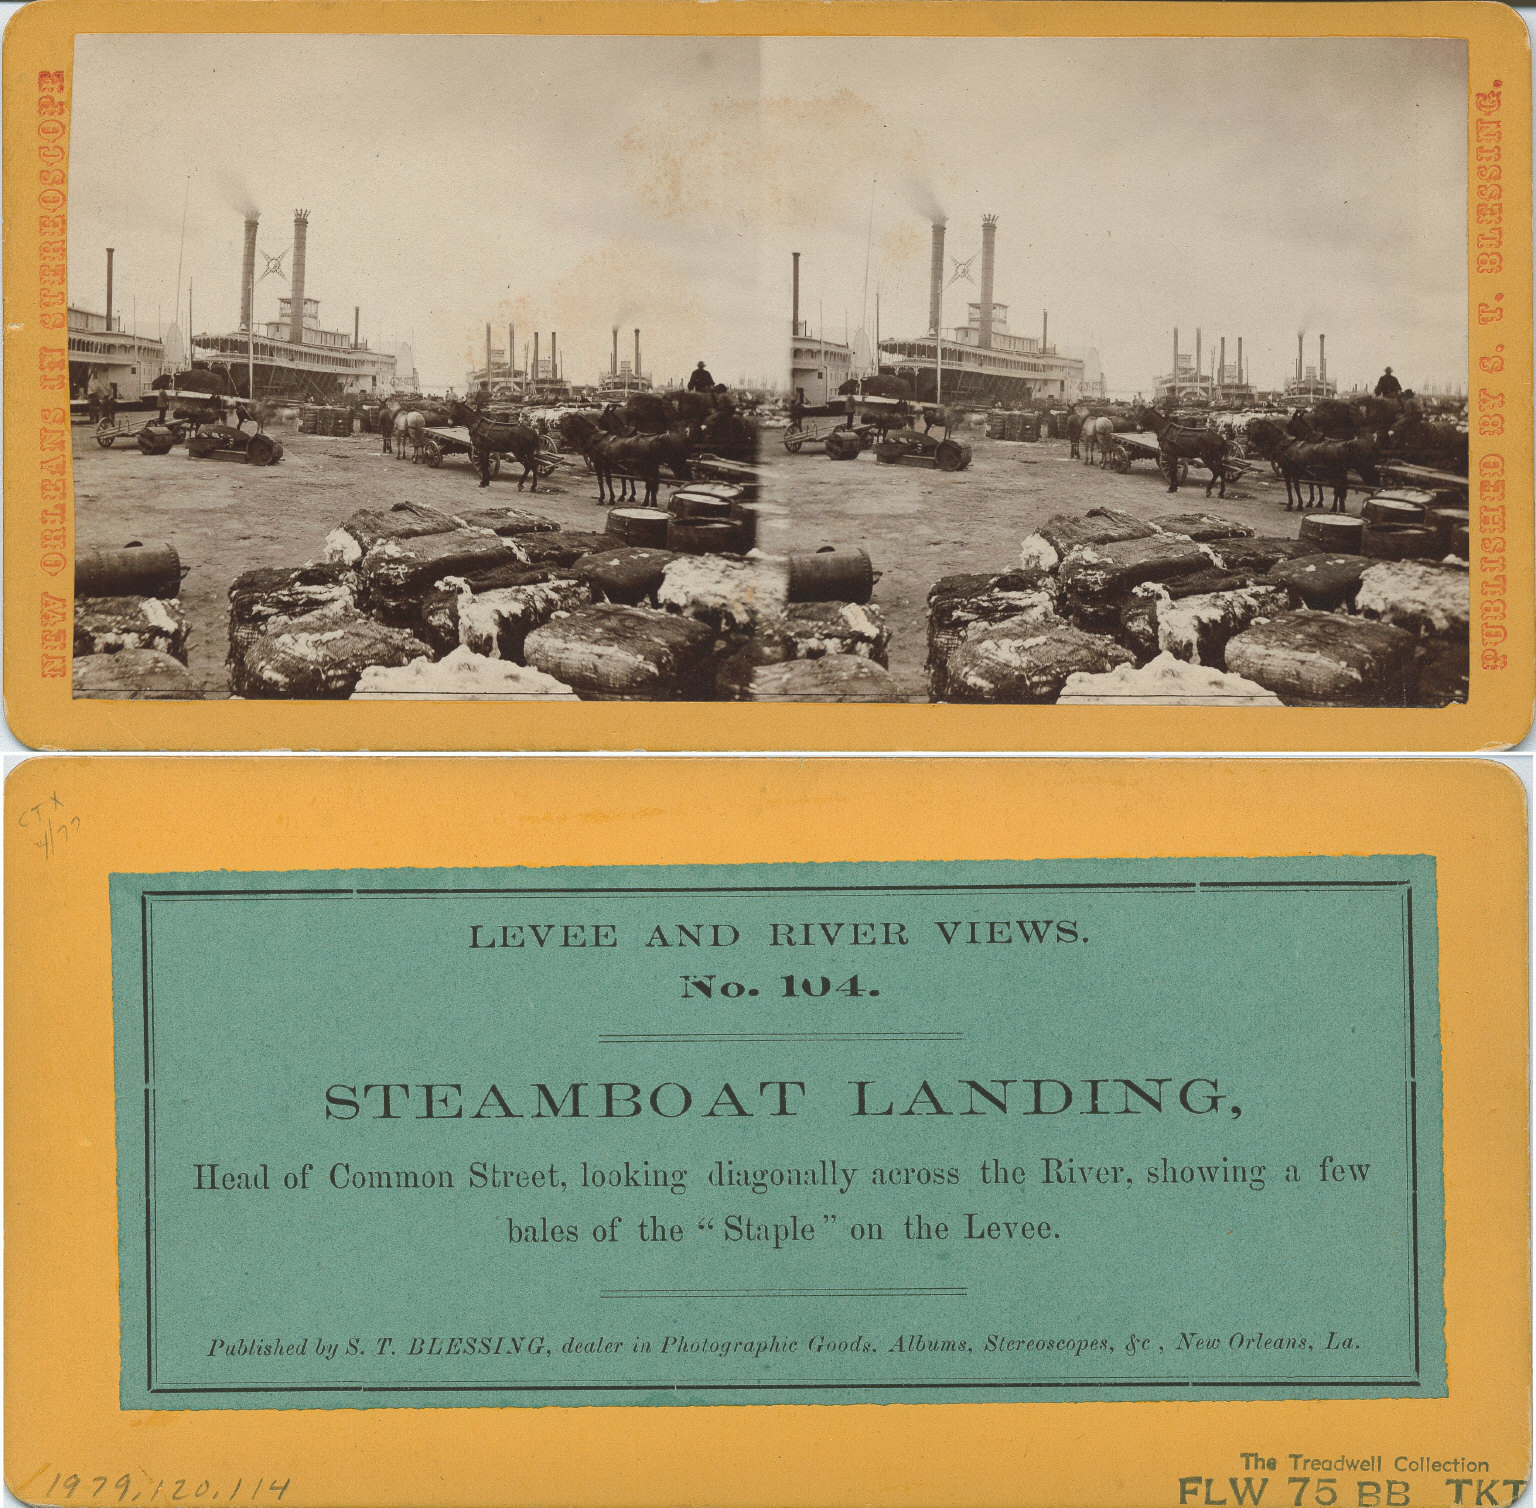 Steamboat landing head of Common Street